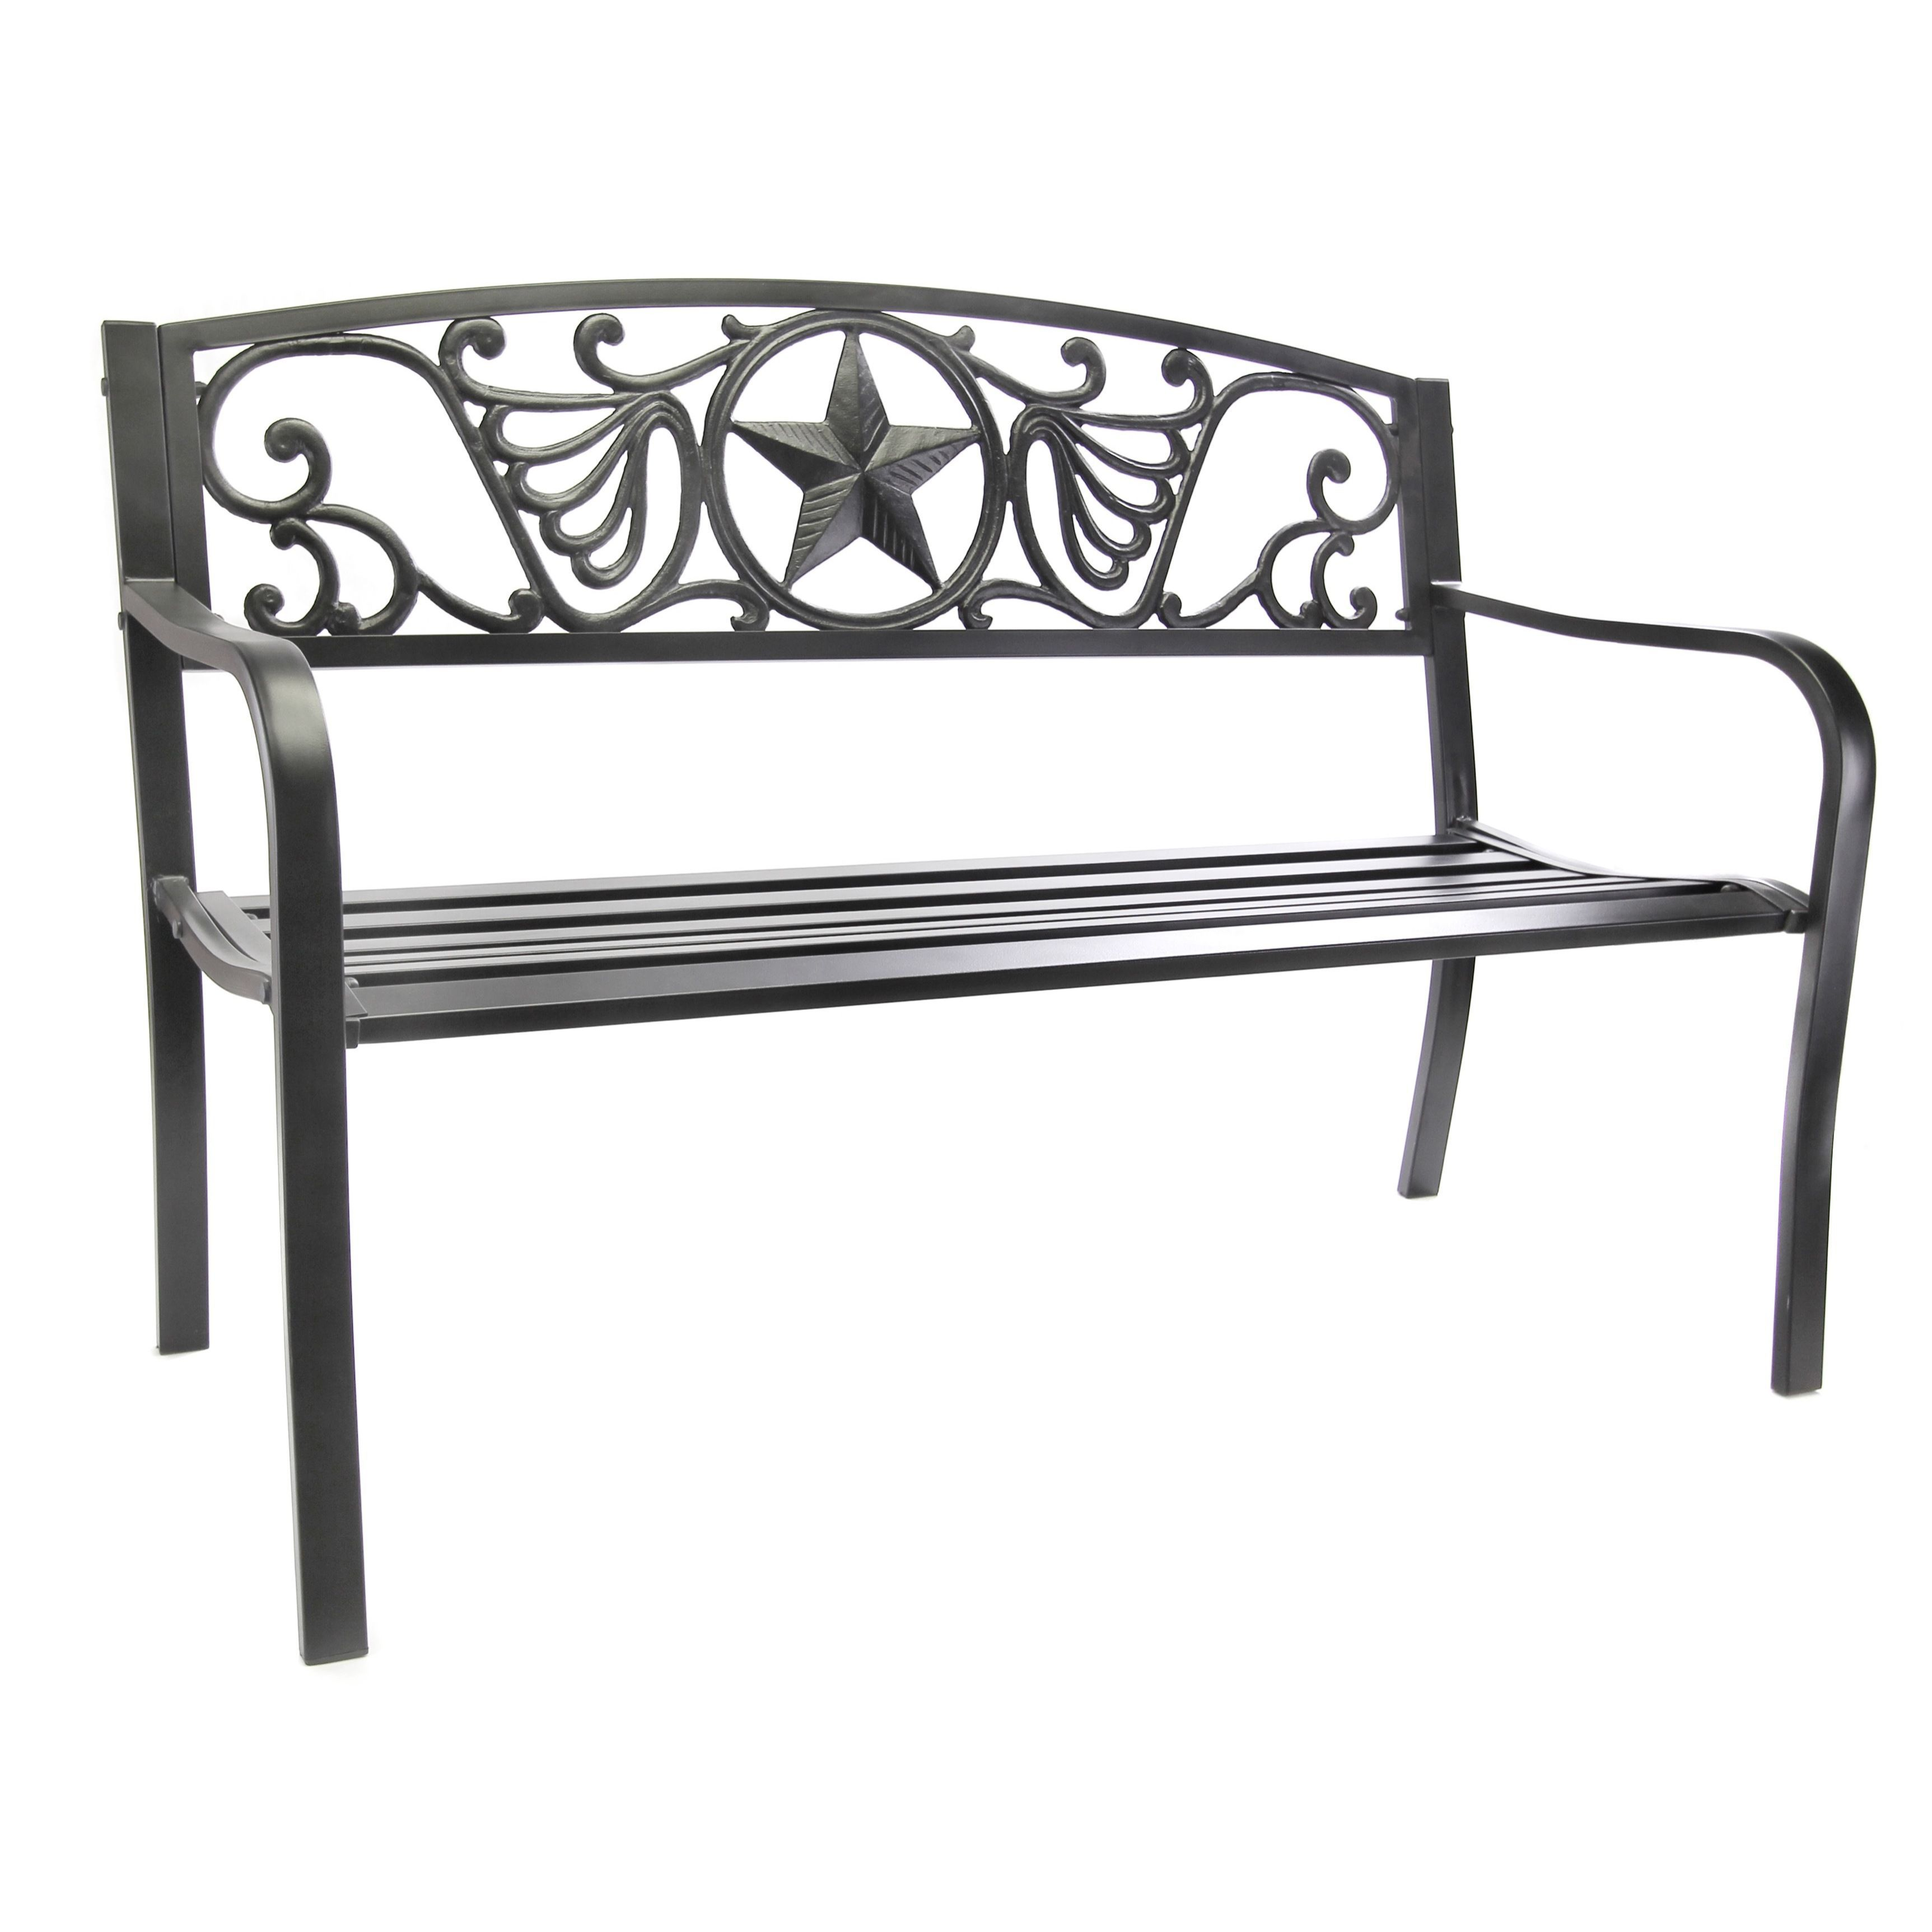 Online Shopping Bedding Furniture Electronics Jewelry Clothing More Metal Garden Benches Teak Outdoor Furniture Benches For Sale